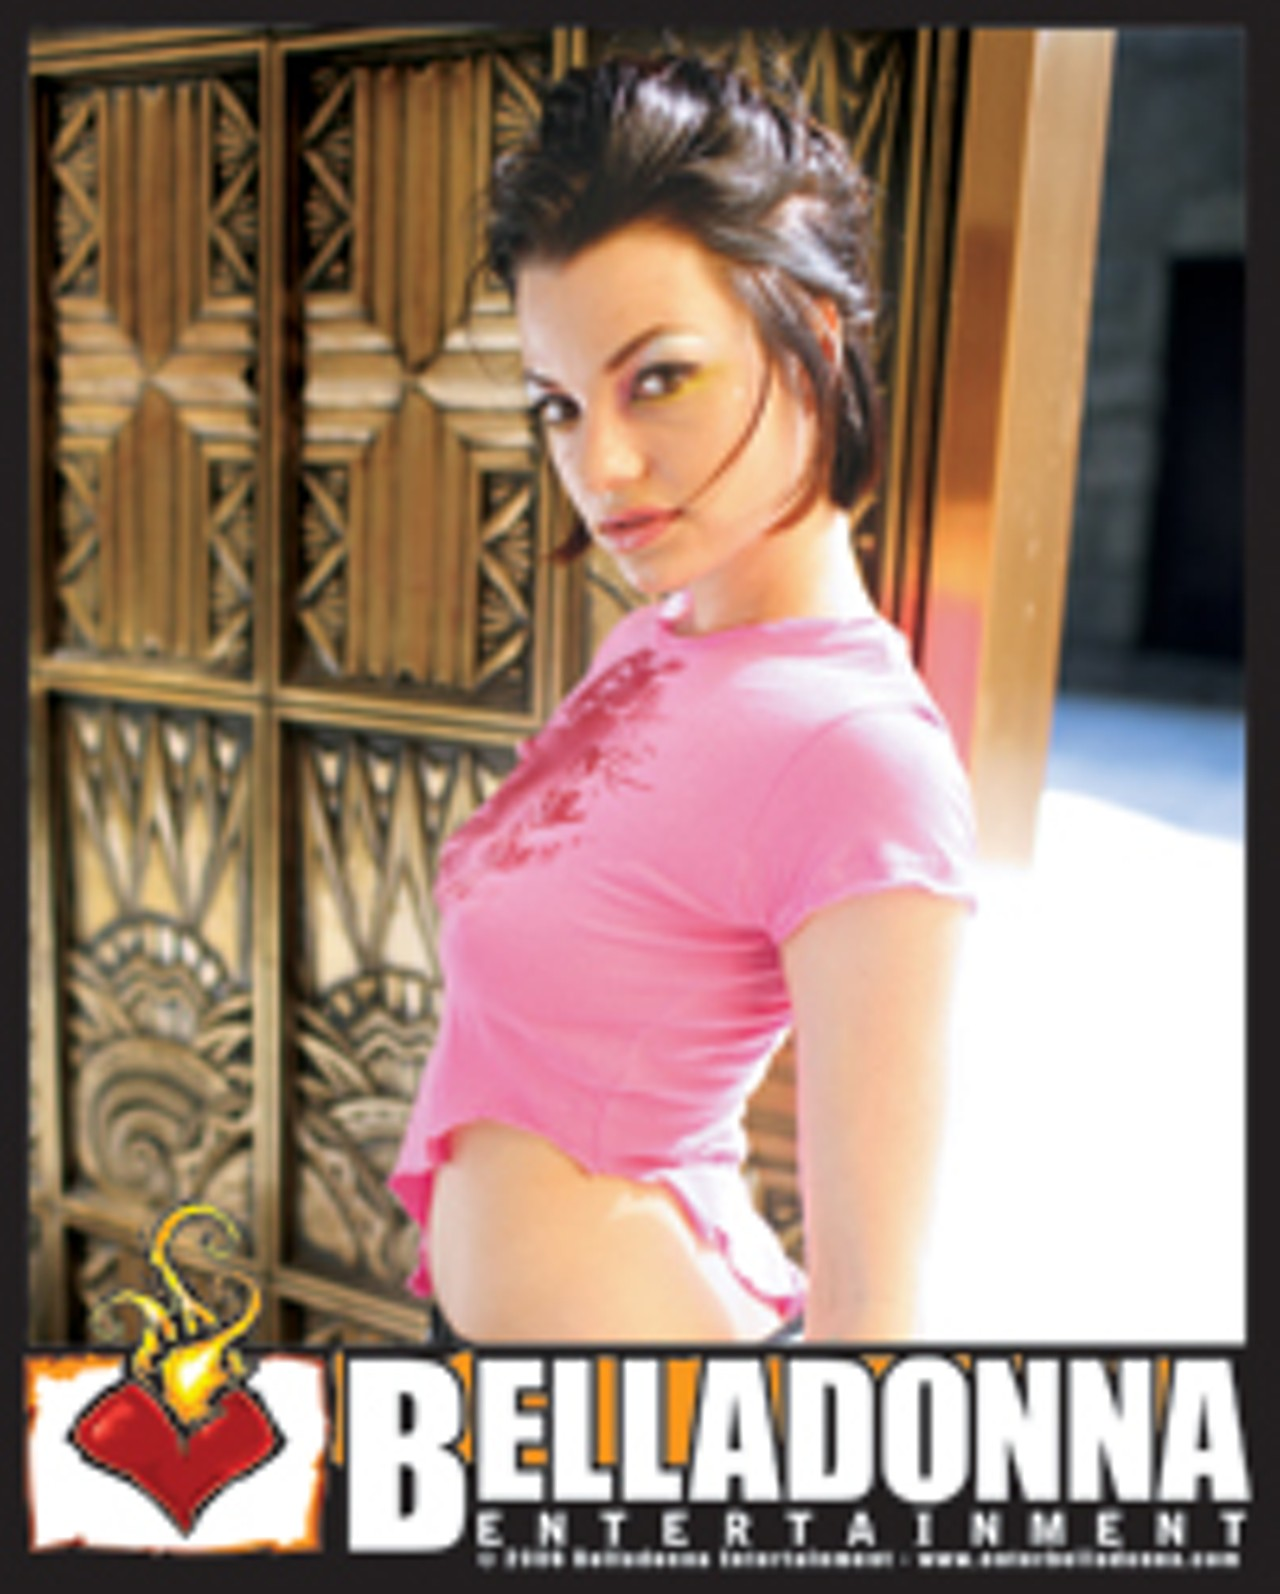 Belladonna All Girl Orgy Filth Factory